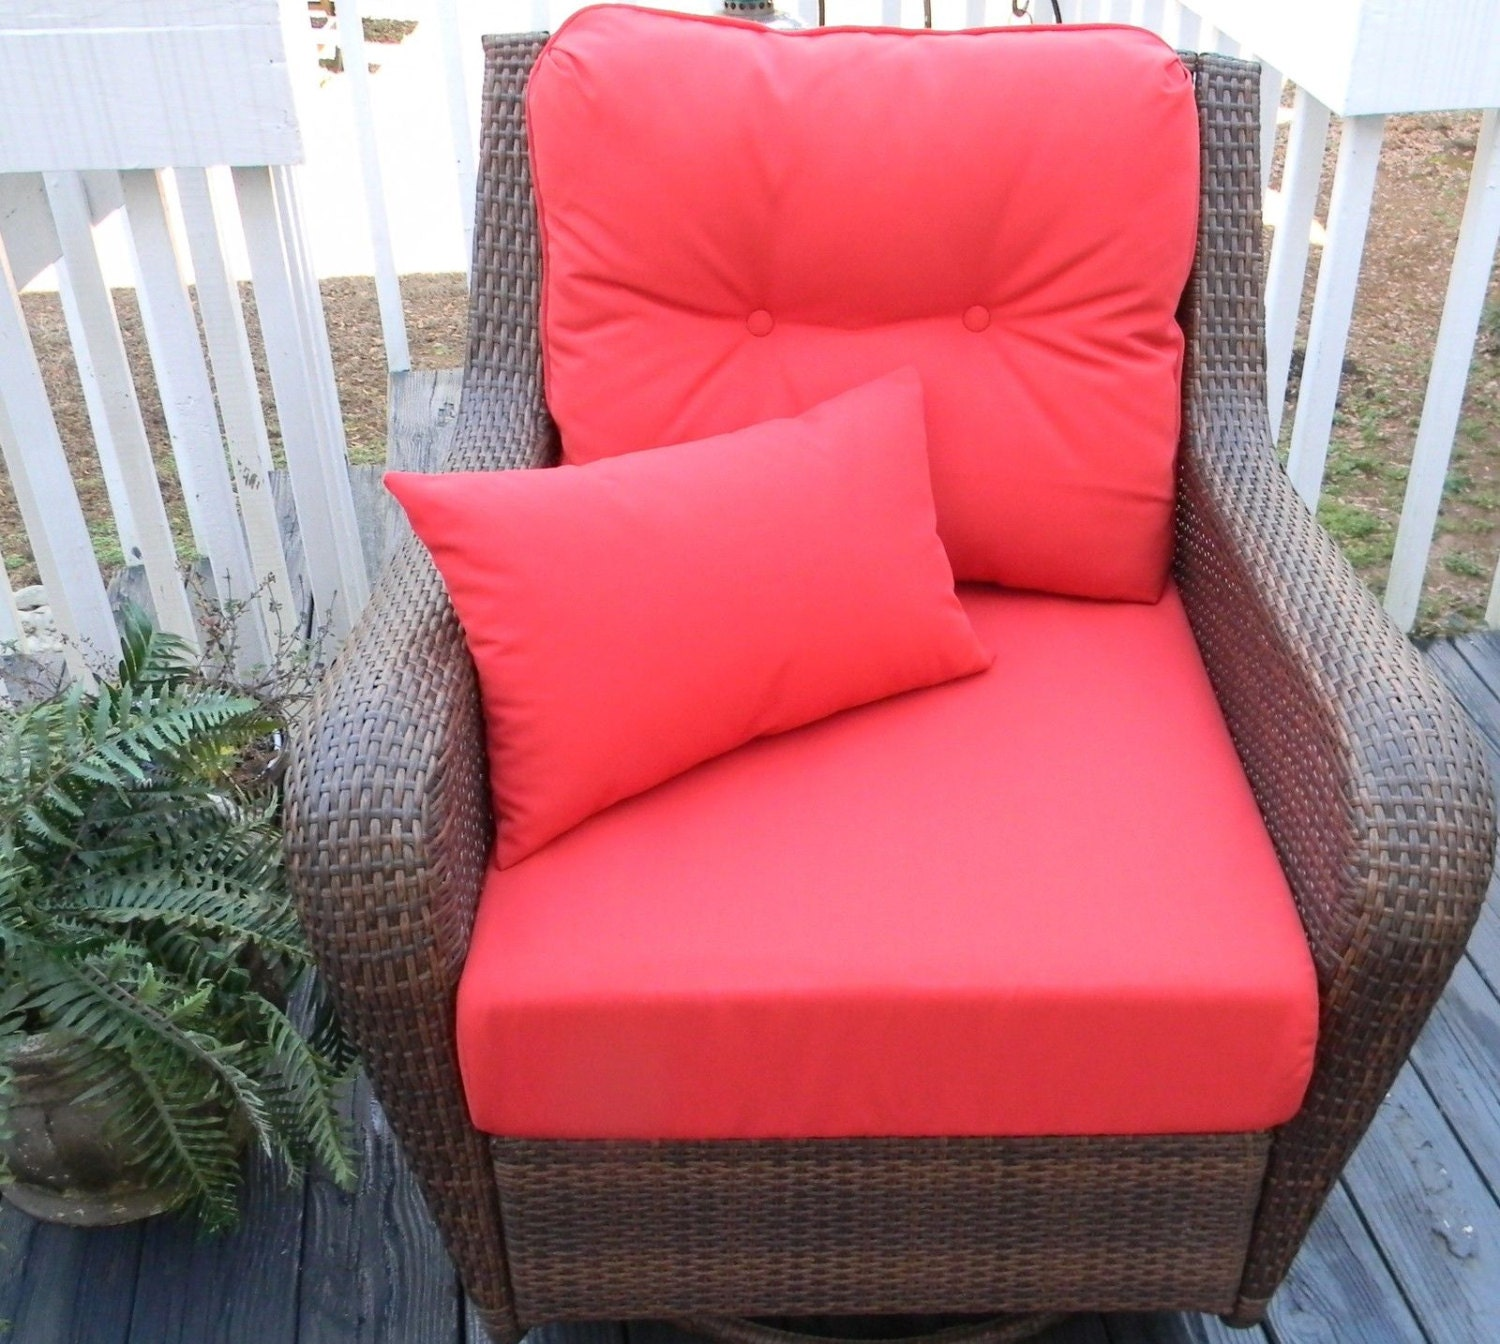 Indoor Outdoor Cushions for Deep Seating Seat & Back